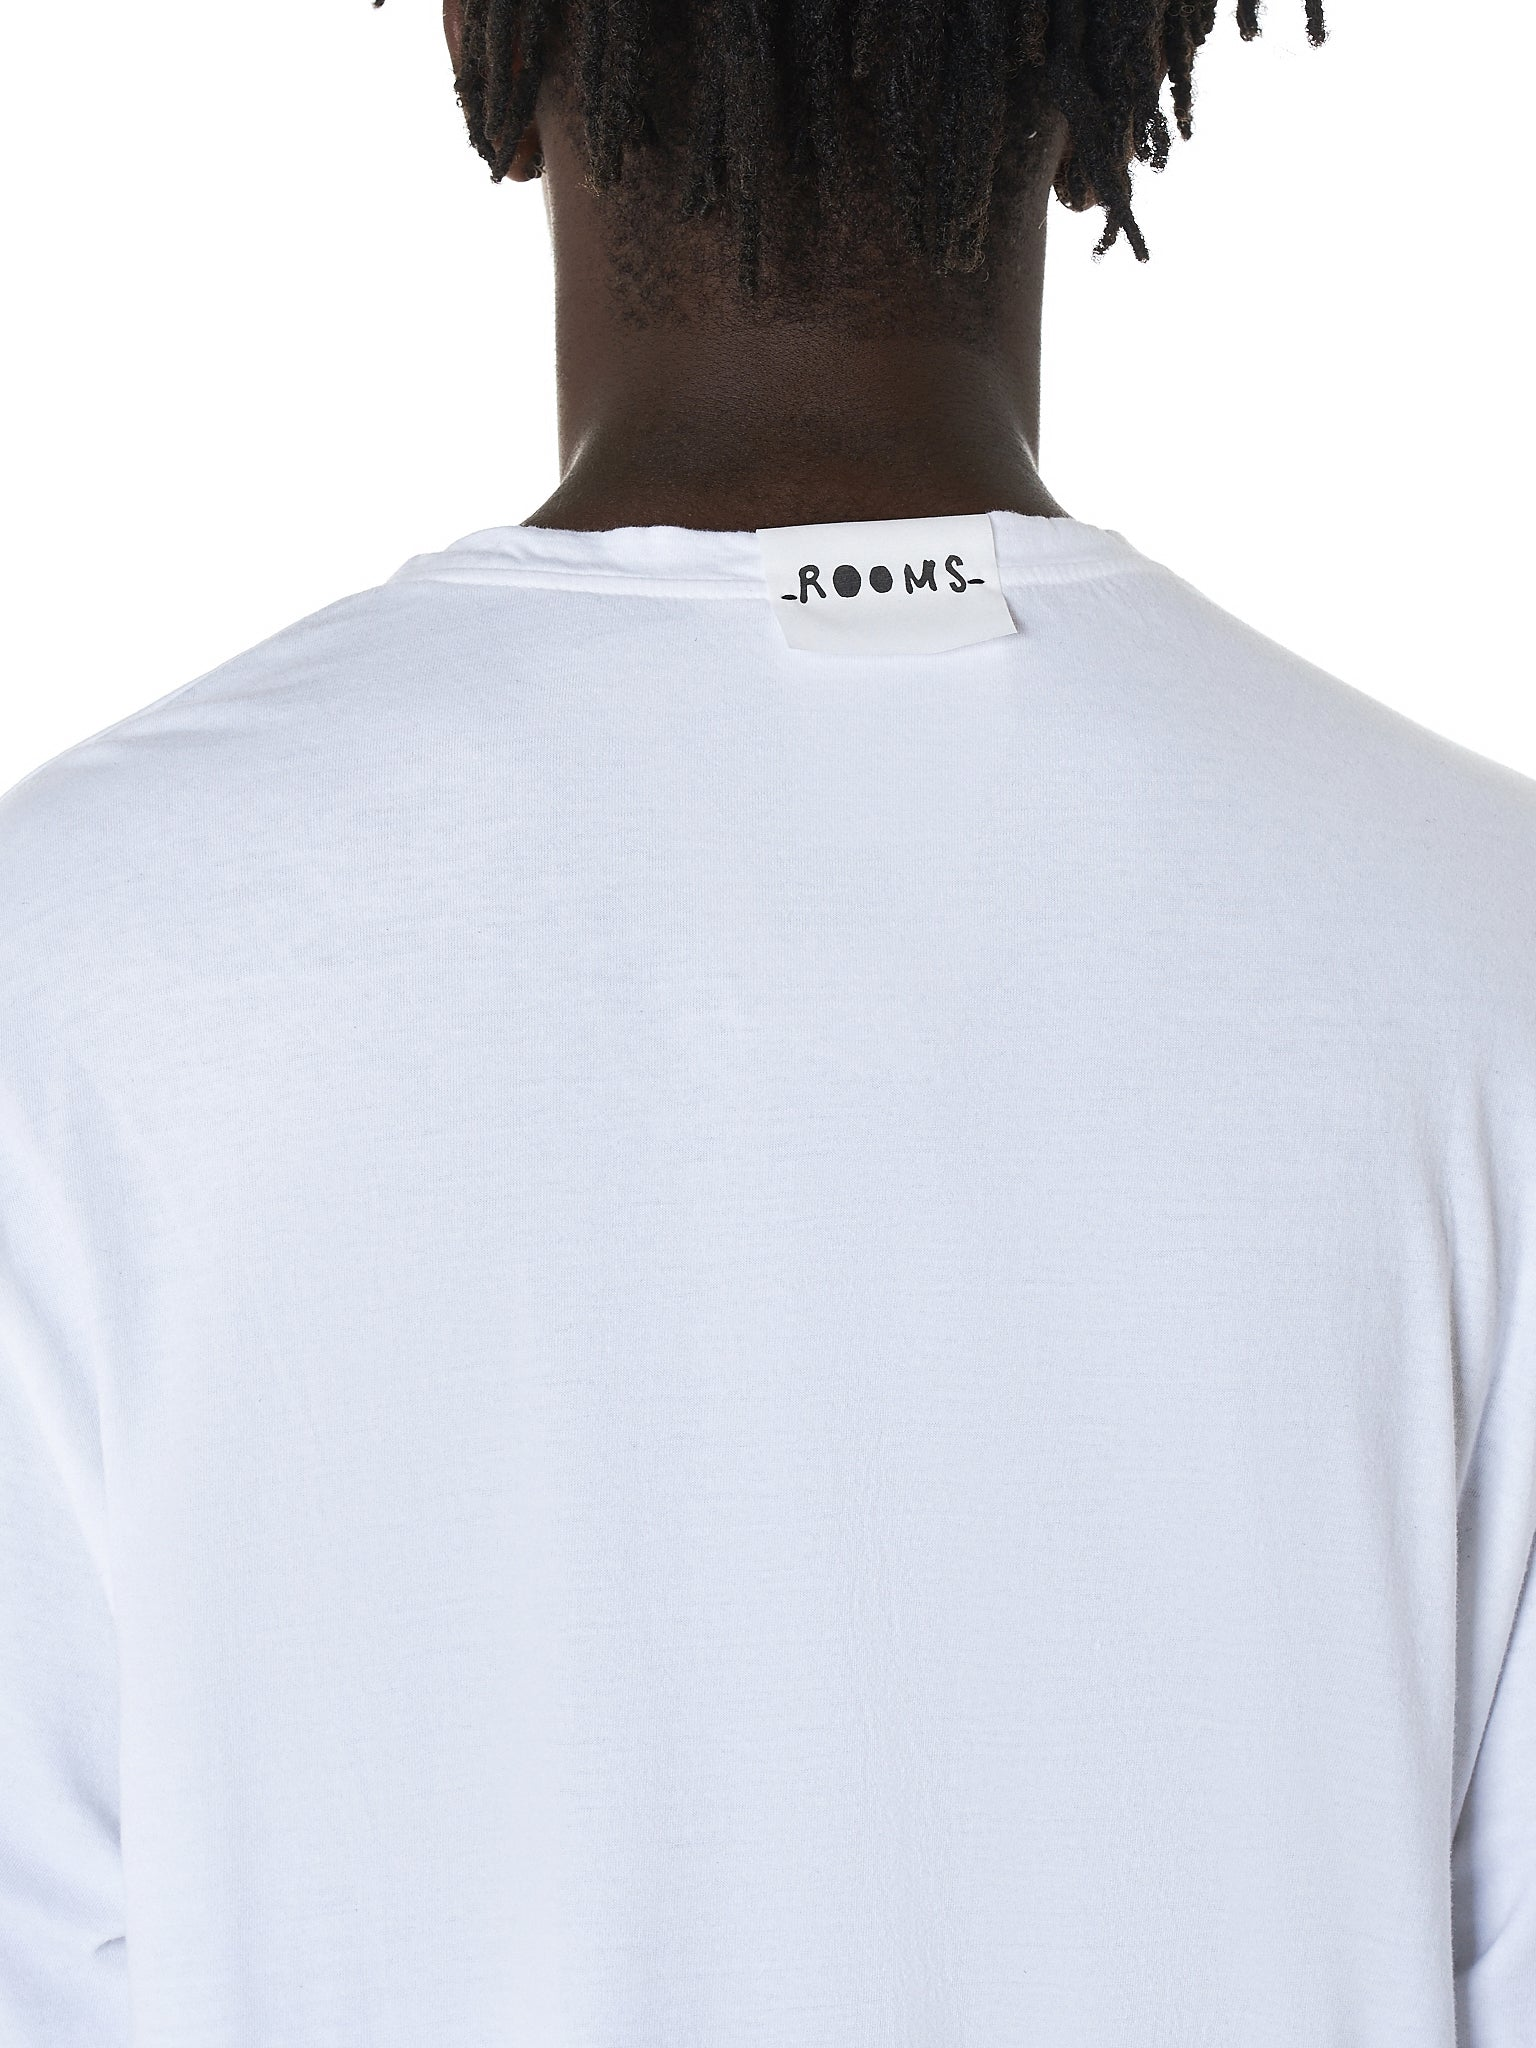 Lost & Found Rooms Tee Shirt - Hlorenzo Detail 1